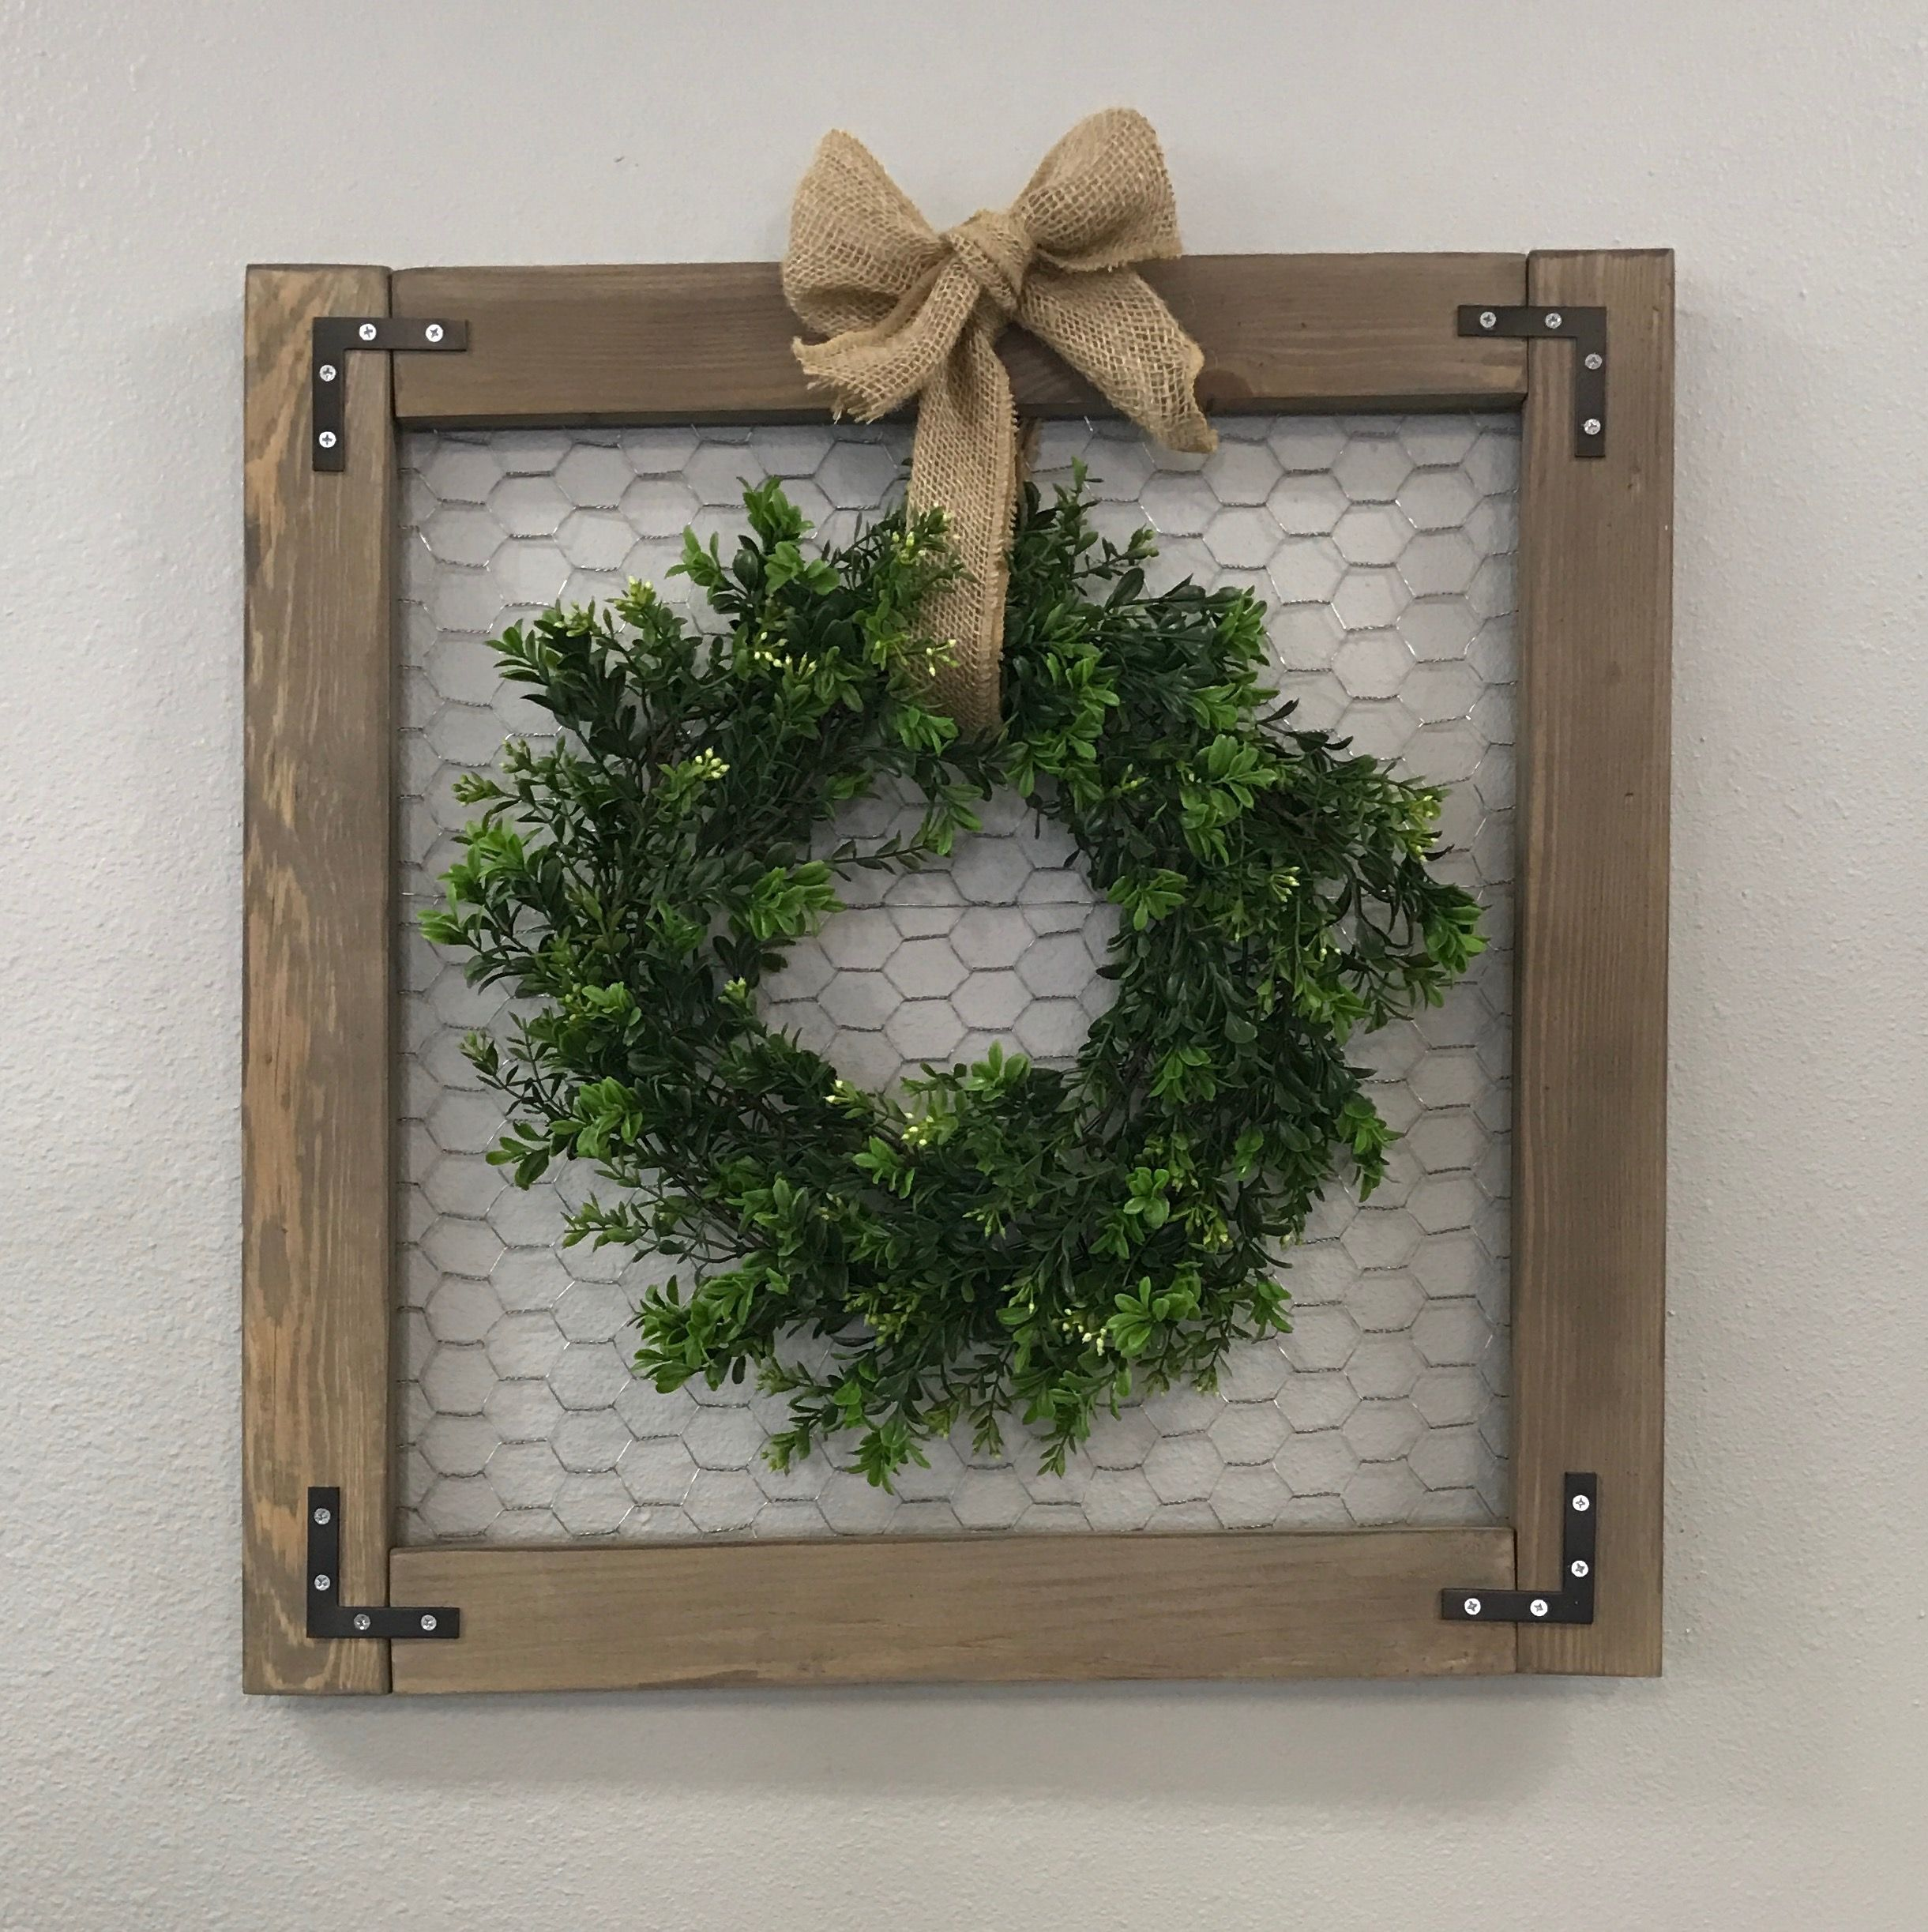 Rustic Chicken Wire Frame w/ Wreath 4/14 | Wall Art/Gallery/Pictures ...